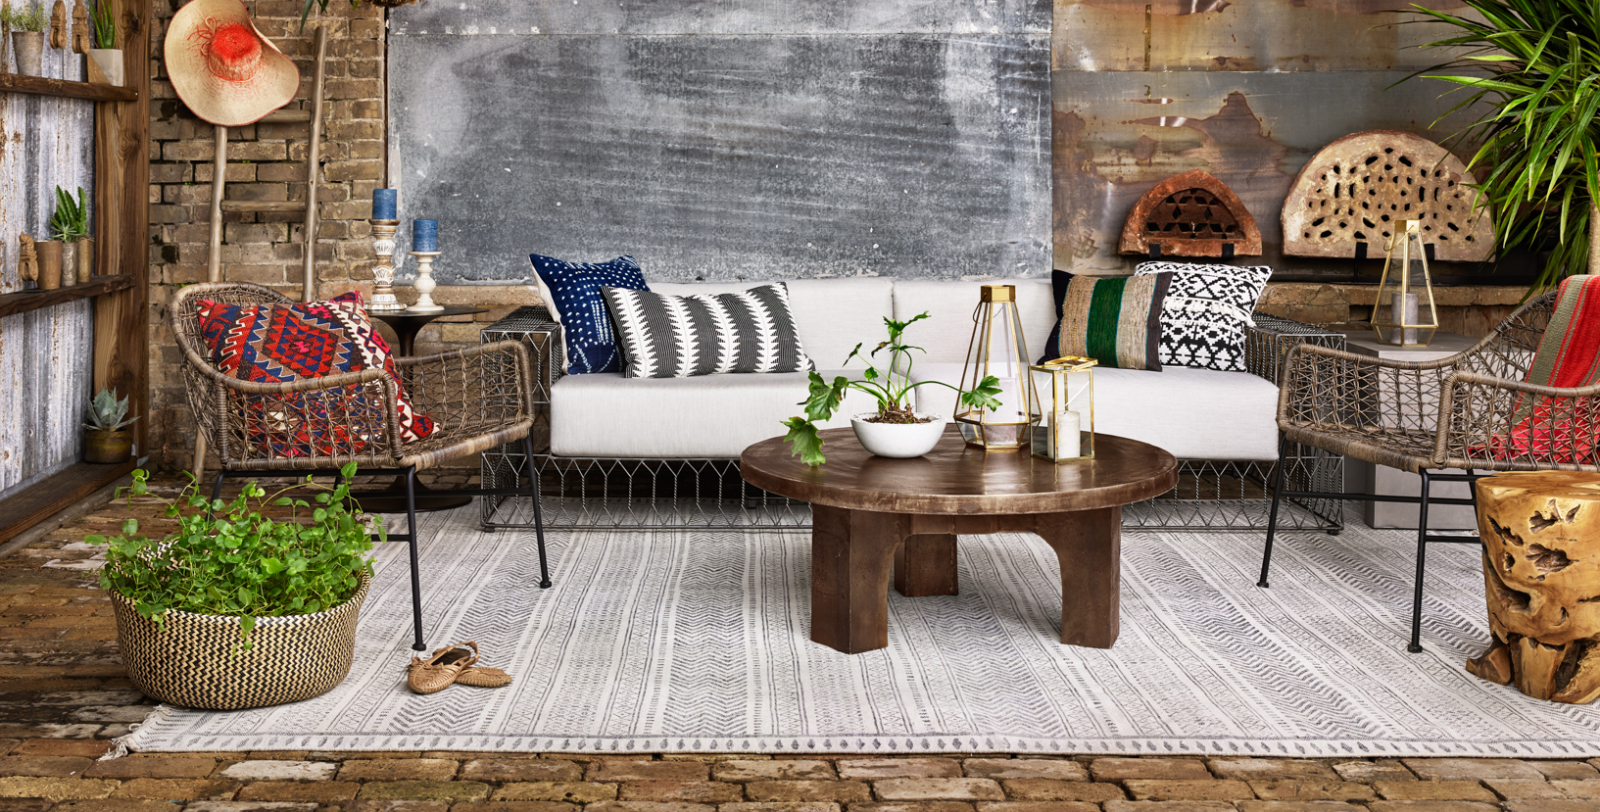 Zin Home Eclectic Modern & Industrial Style Furniture